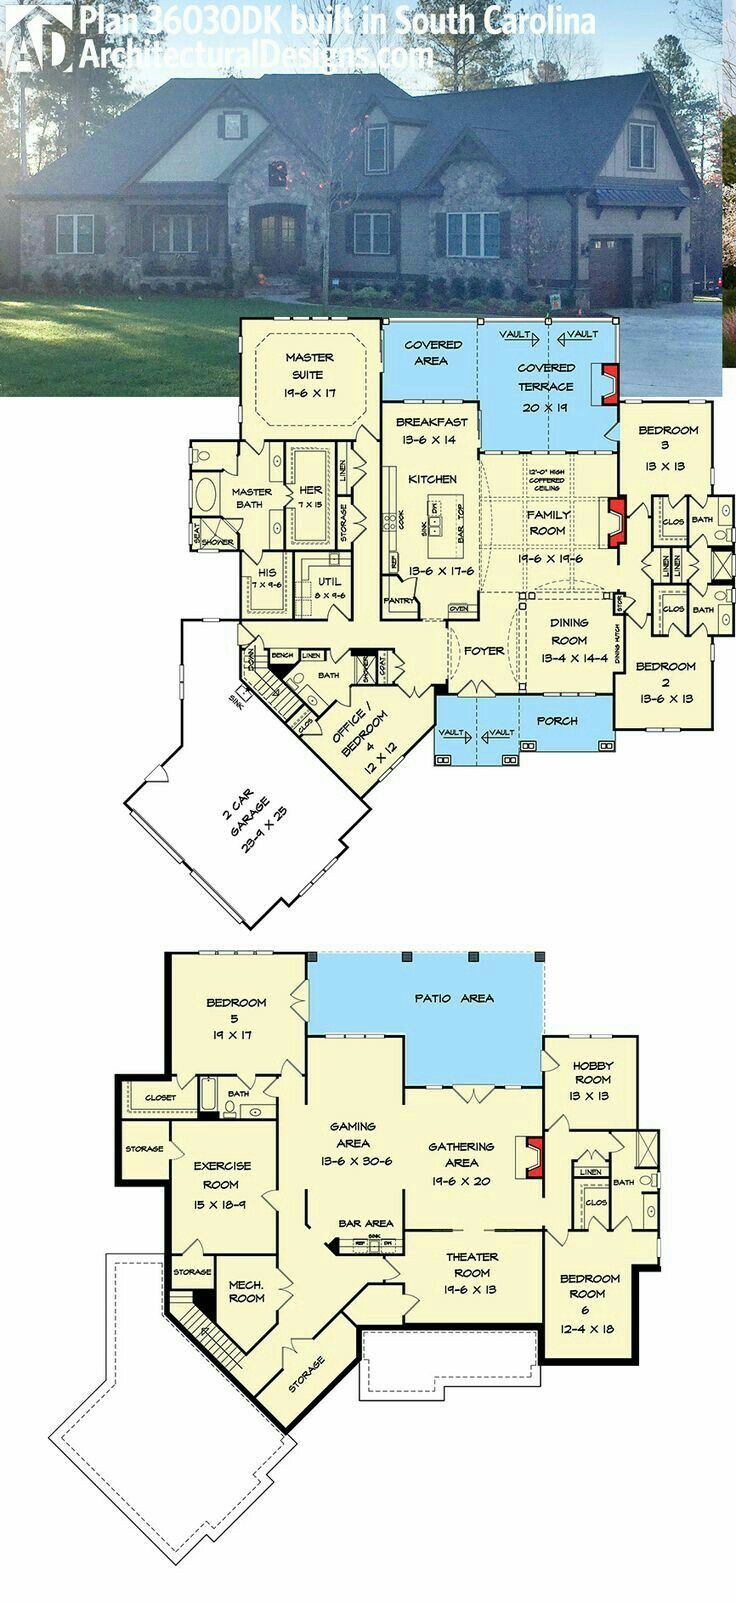 Pin By Brenda Haines On Floor Planning Architectural Design House Plans Home Design Floor Plans House Floor Plans